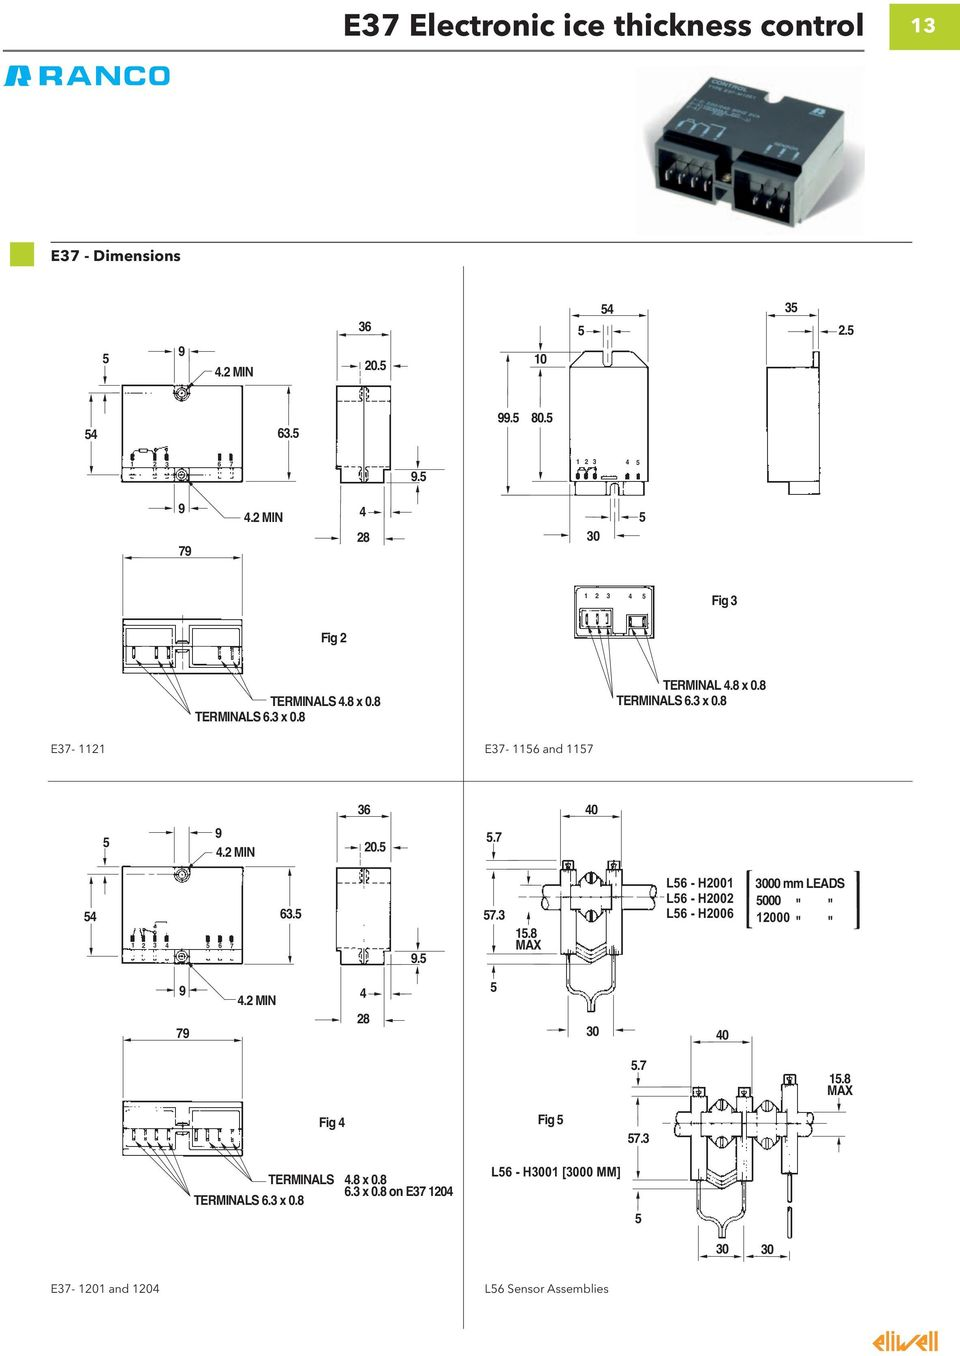 Product Catalogue 2012 13 Electromechanical Controllers Pdf K59 Thermostat Wiring Diagram 2 Min 205 57 54 4 5 1 3 6 7 635 95 573 158